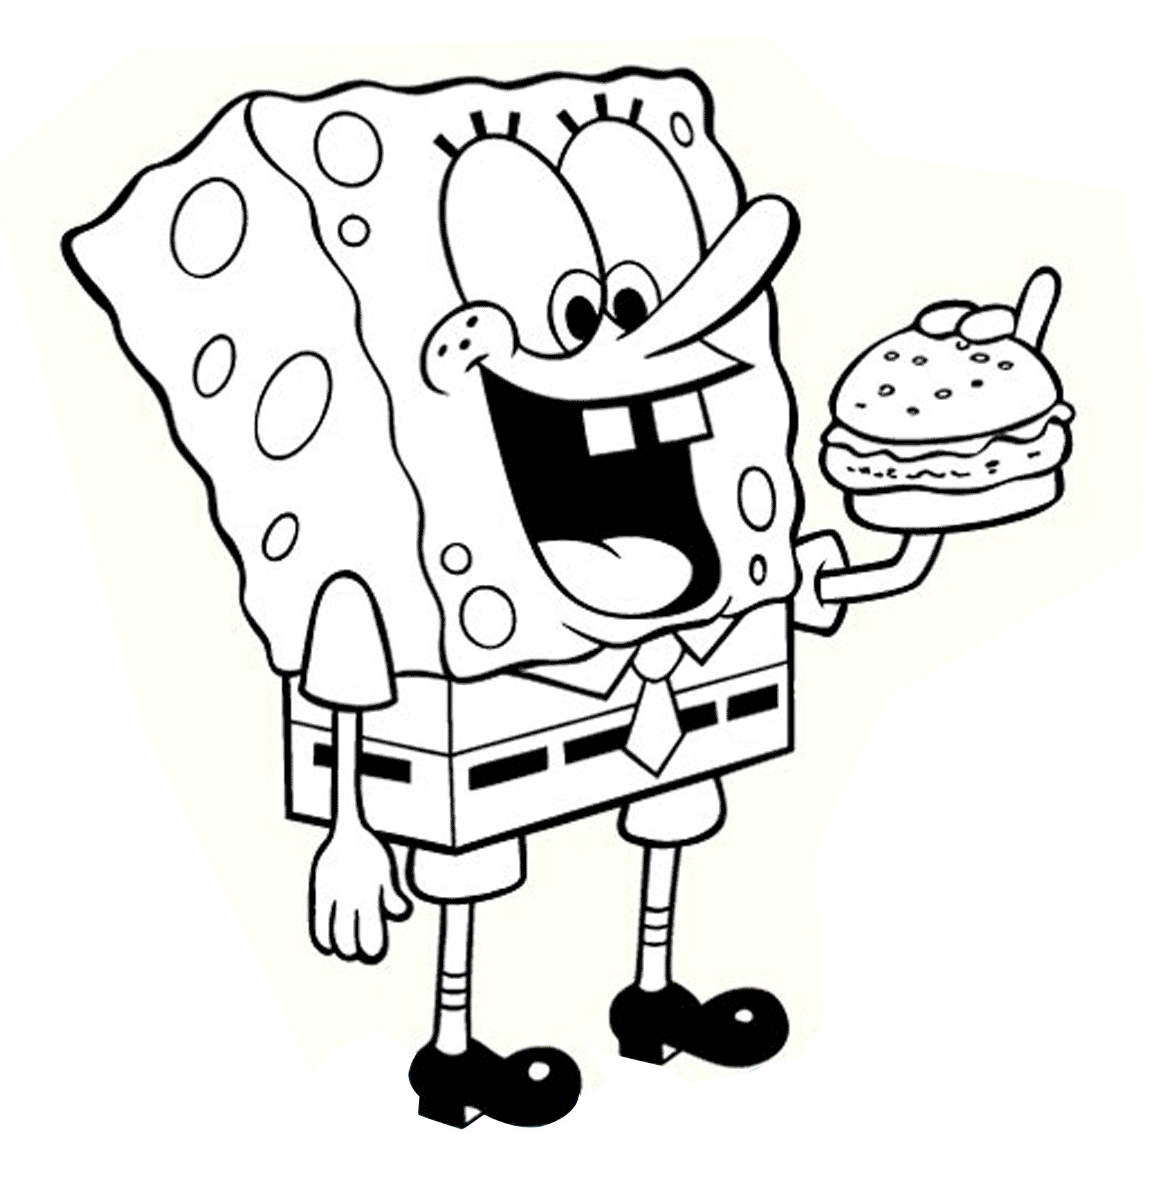 Free Printable Coloring Pages Spongebob | Spongebob Coloring Pages ...